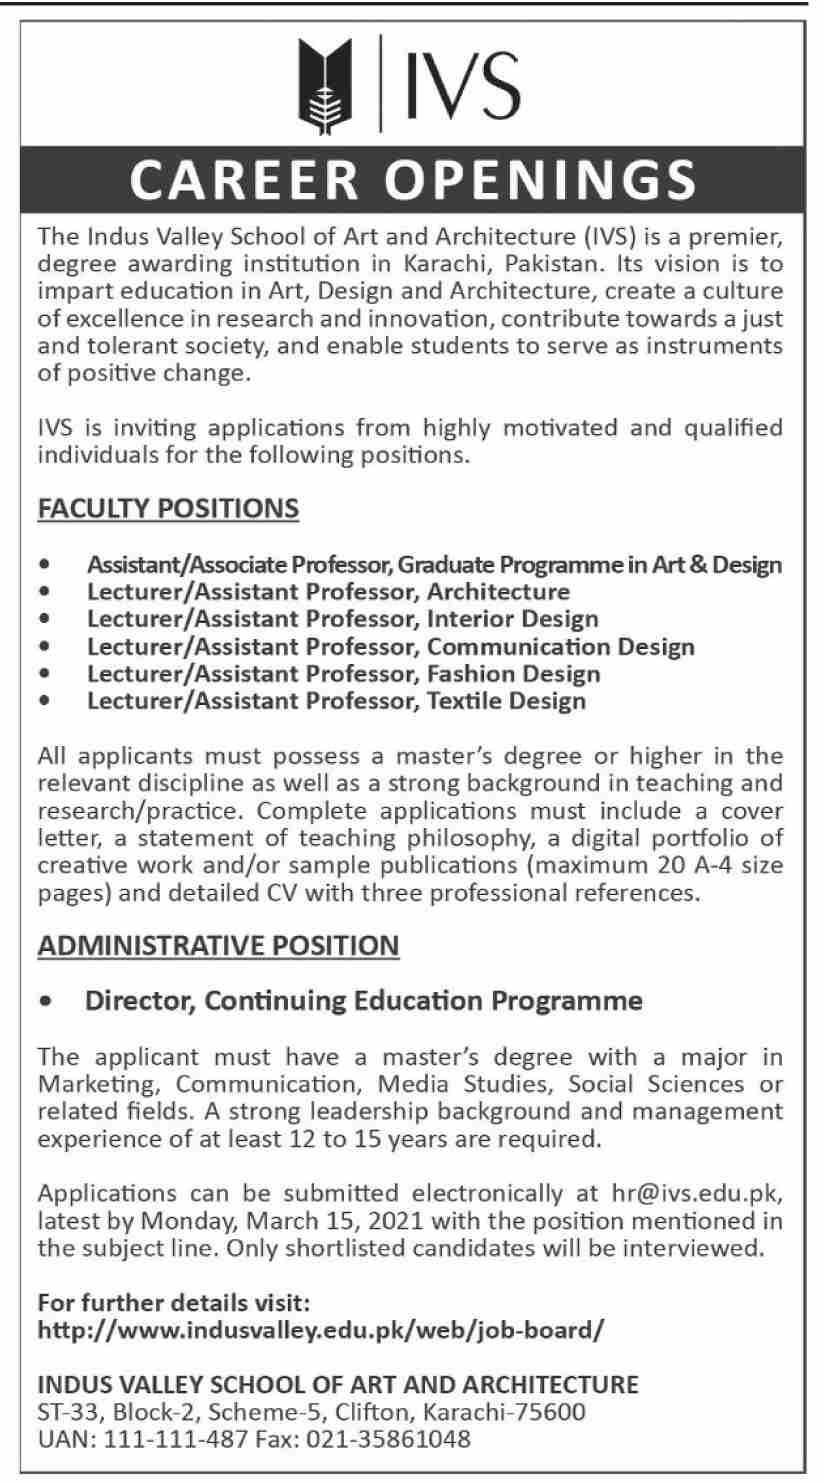 The Indus Valley School of Art and Architecture IVS Jobs February 2021